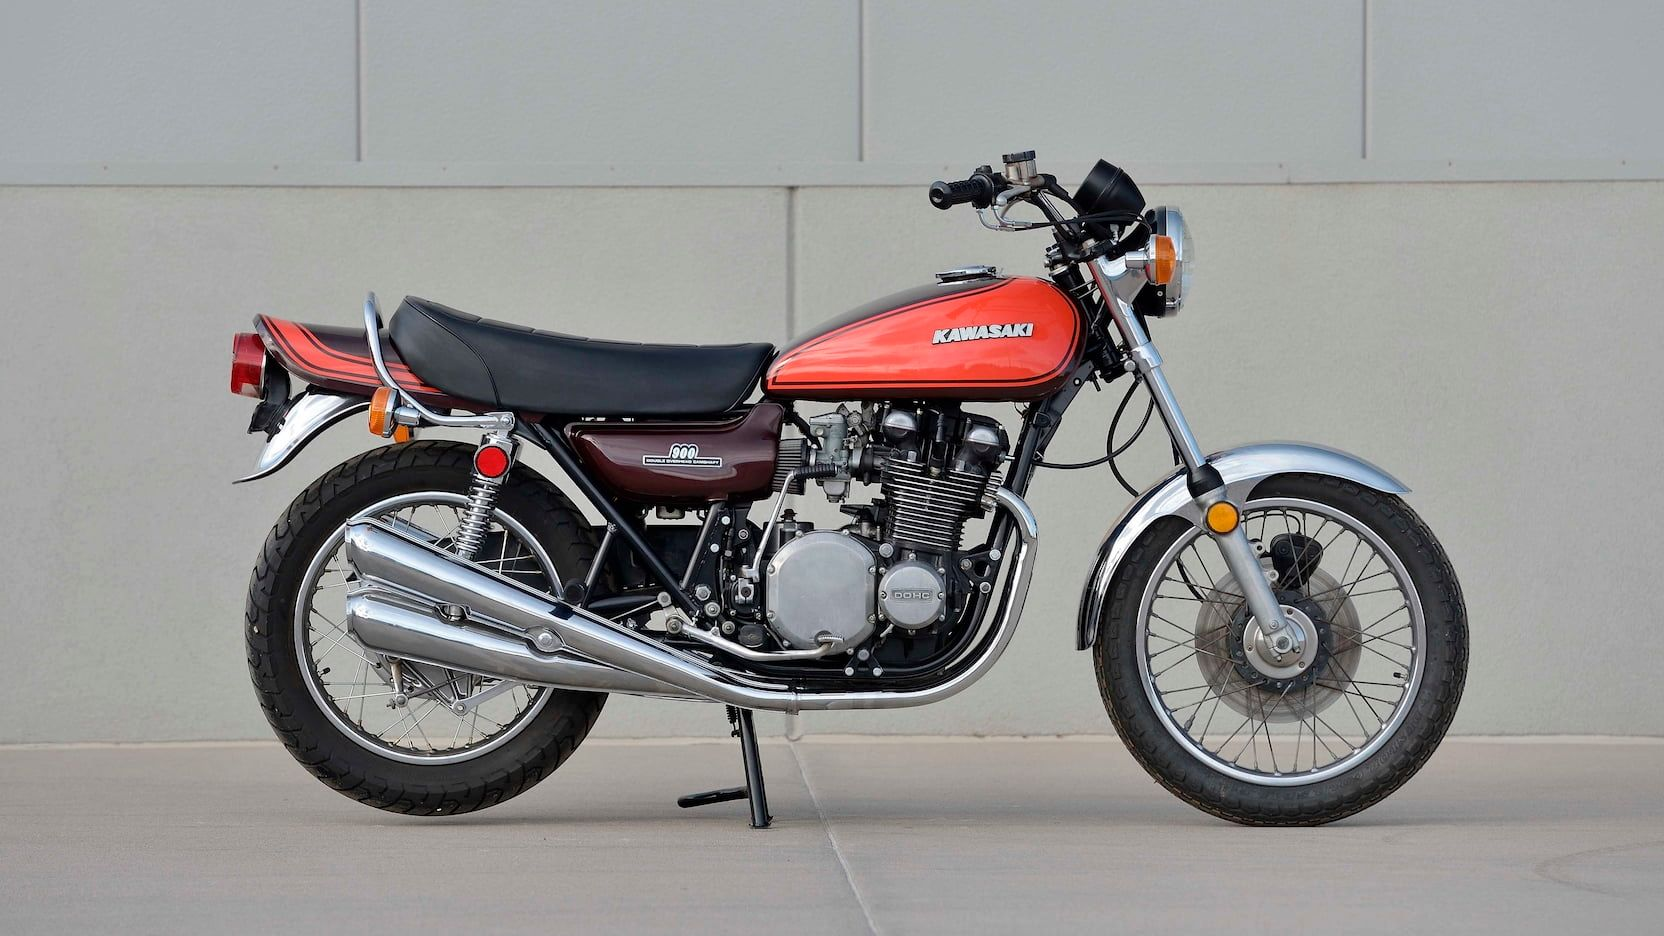 The Kawasaki Z1 was the original Eddie Lawson Replica that led to the modern Z900RS